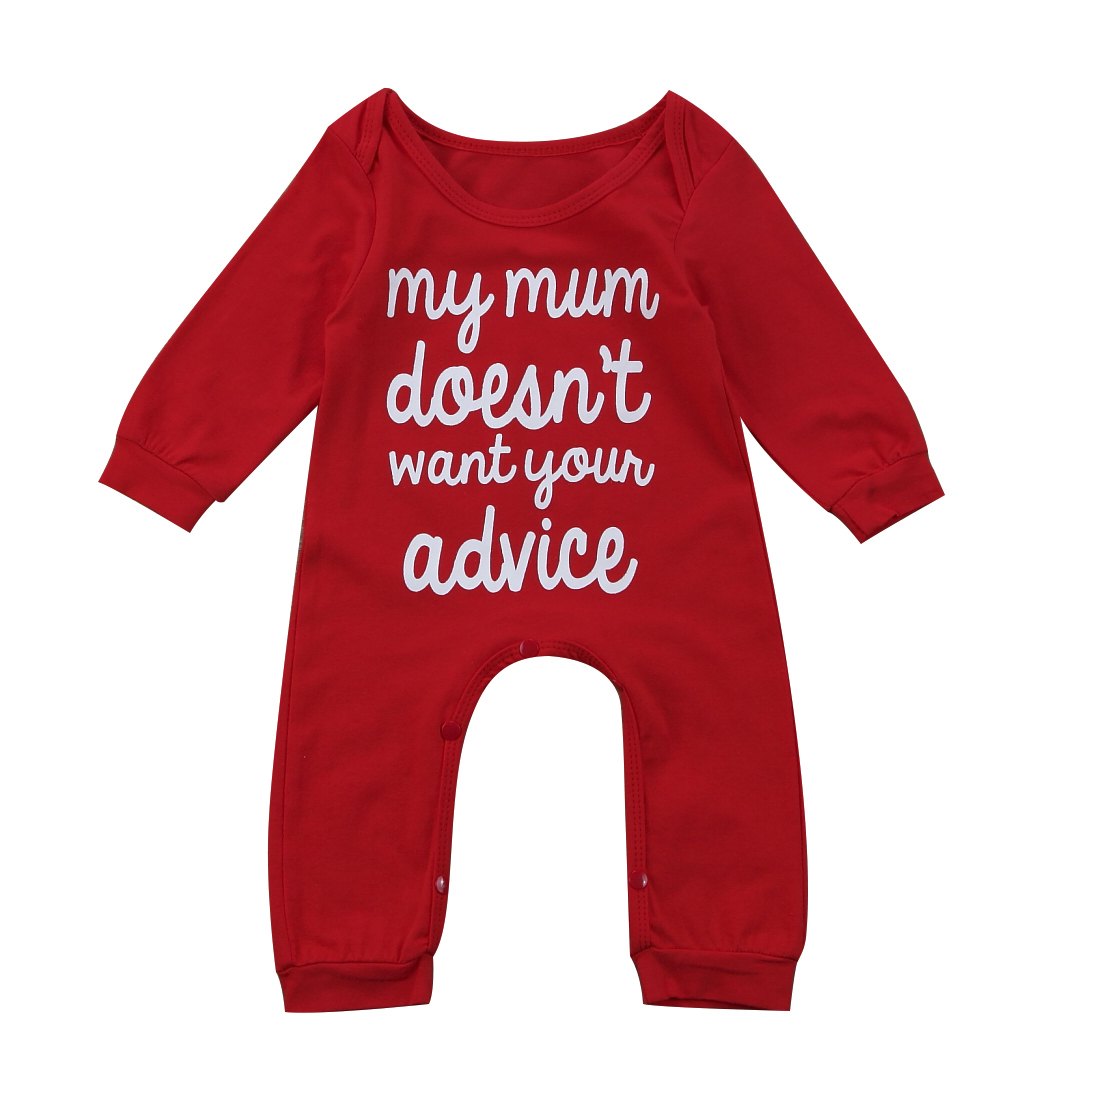 Hot Top Baby Kids Boy Girls Clothes Infant Long Sleeve Romper Jumpsuit Playsuit Cotton Clothes Outfit Set top baby kids boy girl infant romper jumpsuit cotton clothes outfit set summer infant toddler girls boys rompers sunsuits cute